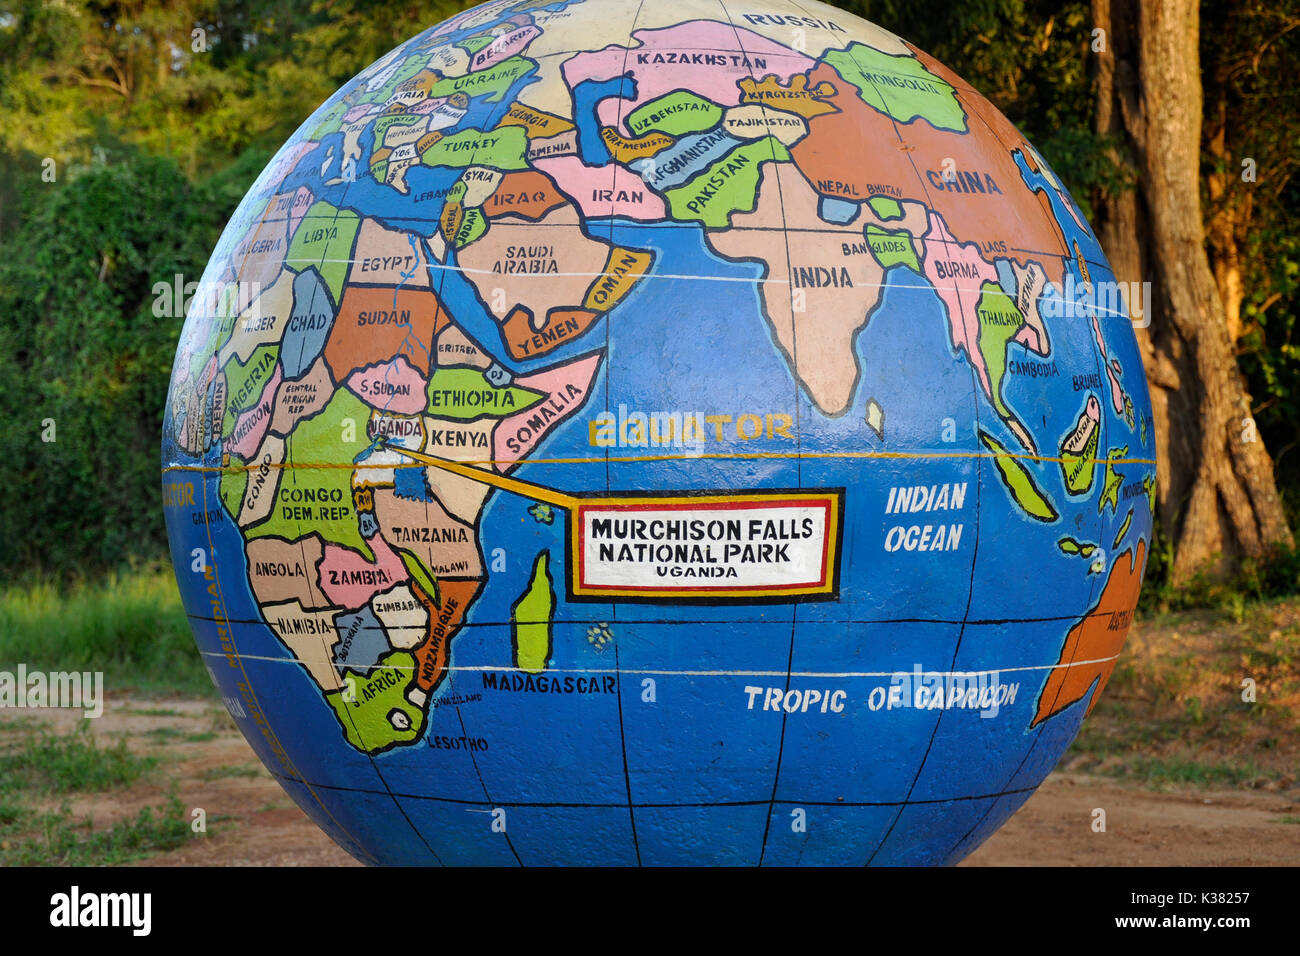 Uganda, World Map at Nile River Deck Stock Photo: 156914611 - Alamy